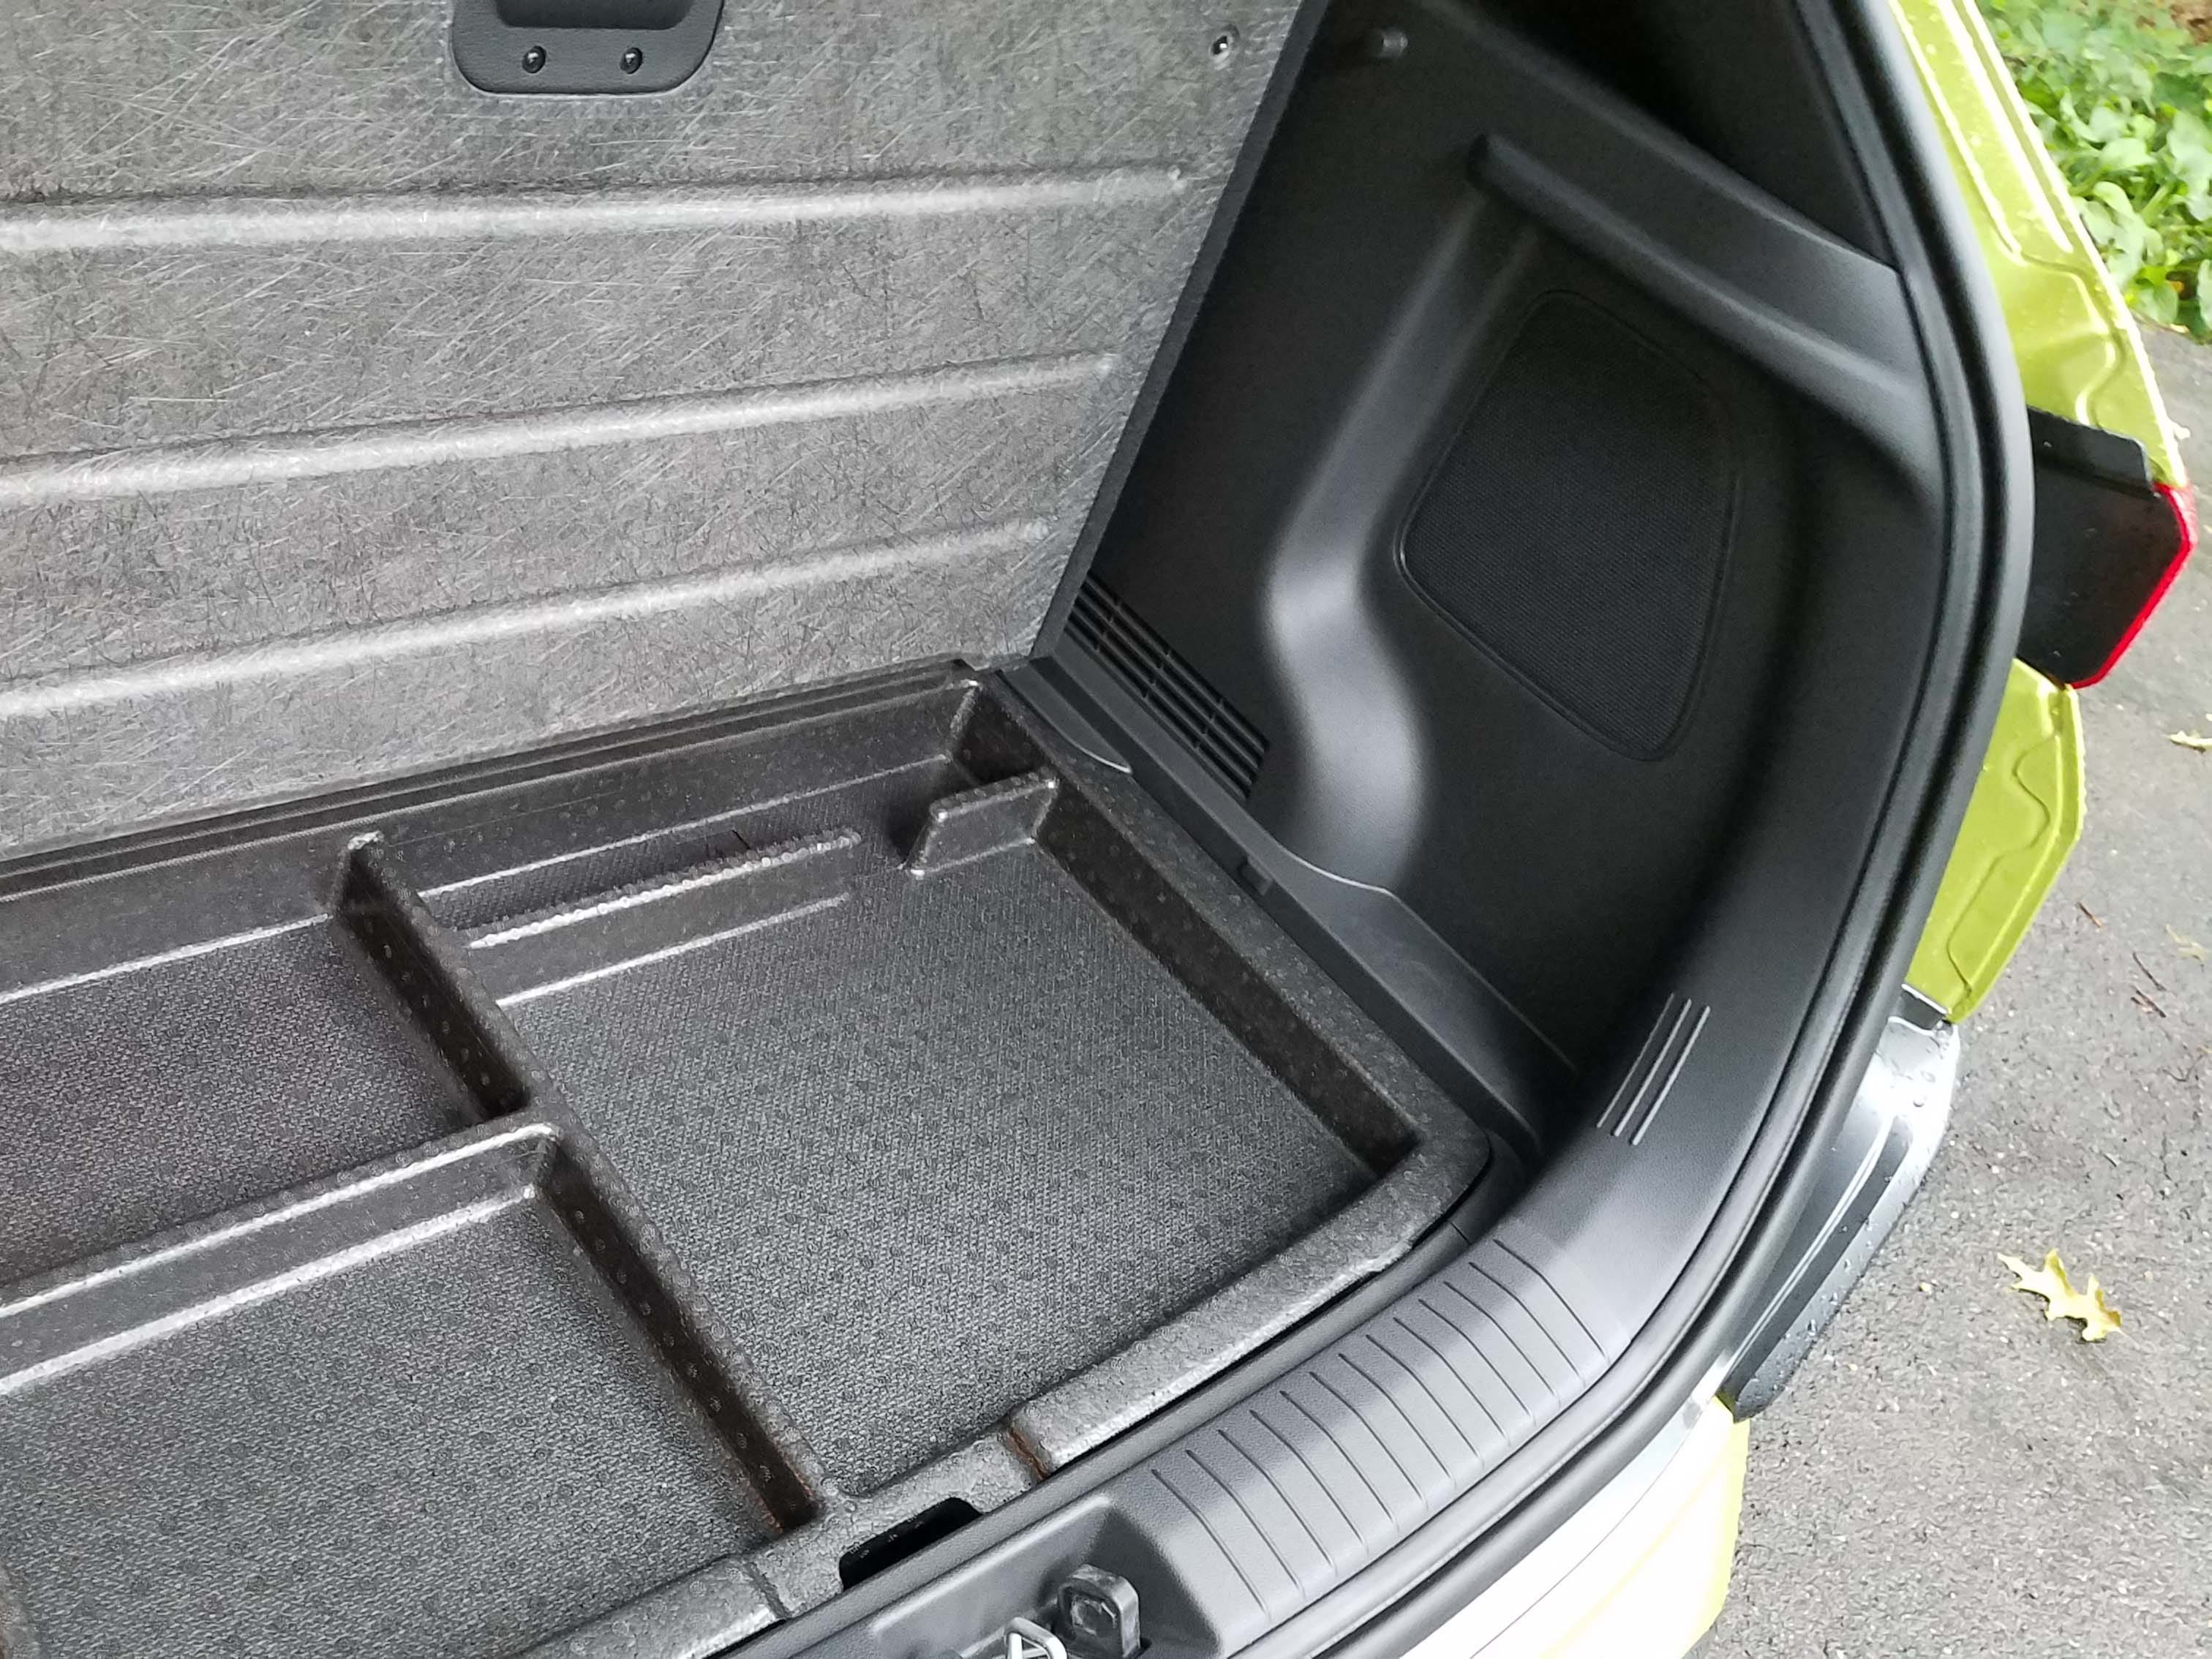 The 2018 Hyundai Kona compliments its best-in-class cargo space with nifty sub-cargo bins under the rear floor mat.